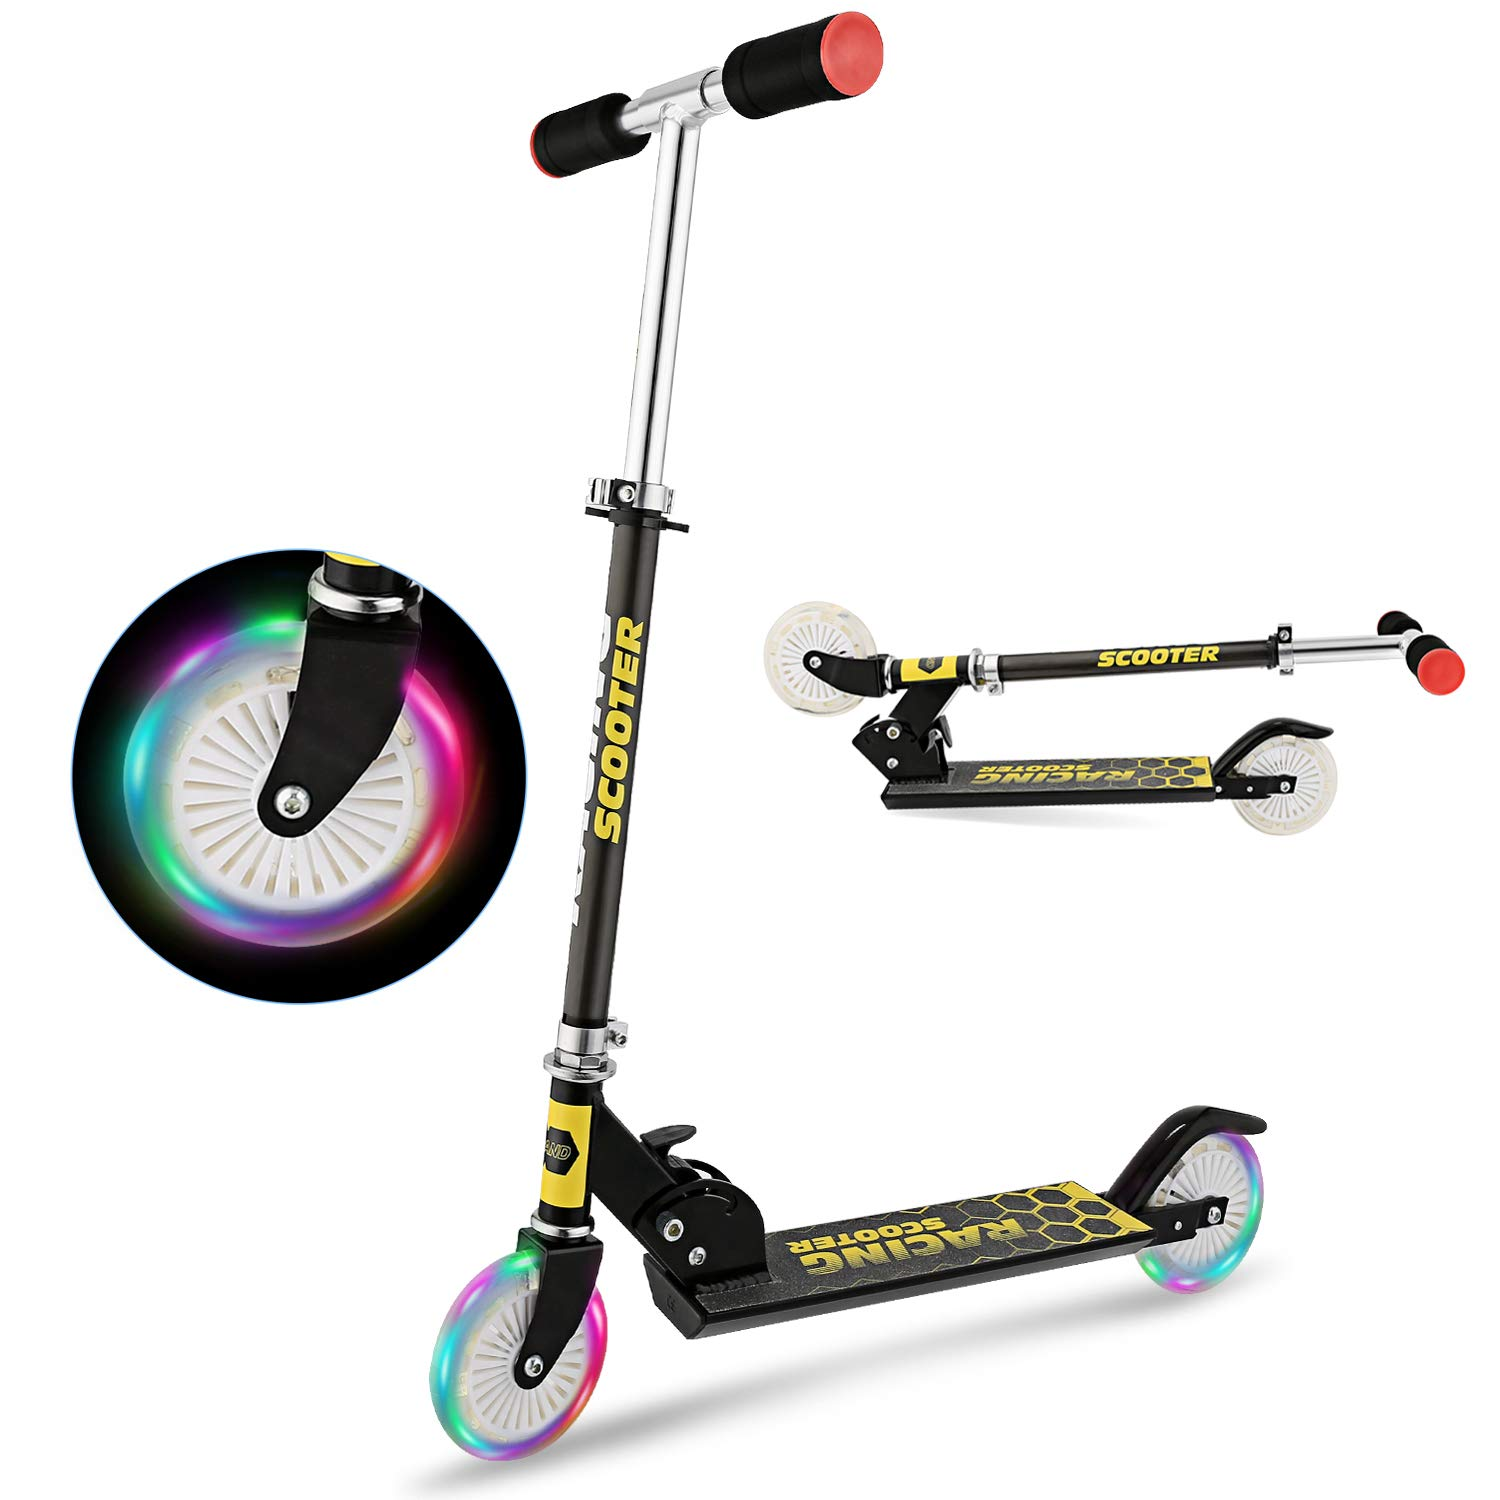 YUEBO Kick Scooter for Kids with LED Light Up Wheels, Adjustable Height, Lightweight Aluminum Folding Kids Scooters 2 Wheel for Girls Boys,110lb Weight Capacity